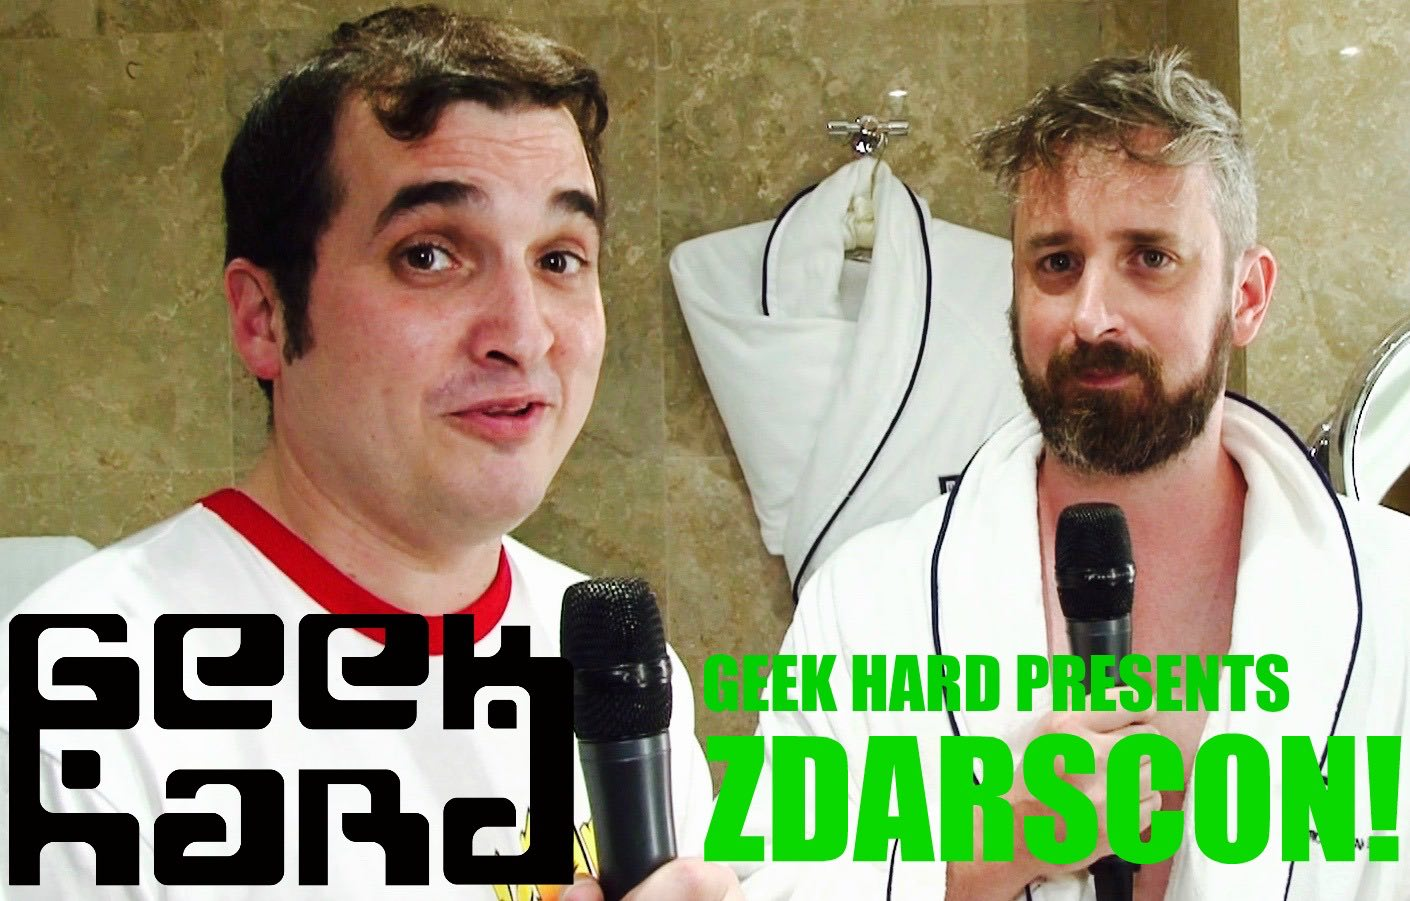 Geek Hard Presents: A Look Back on ZDARSCON 2016!